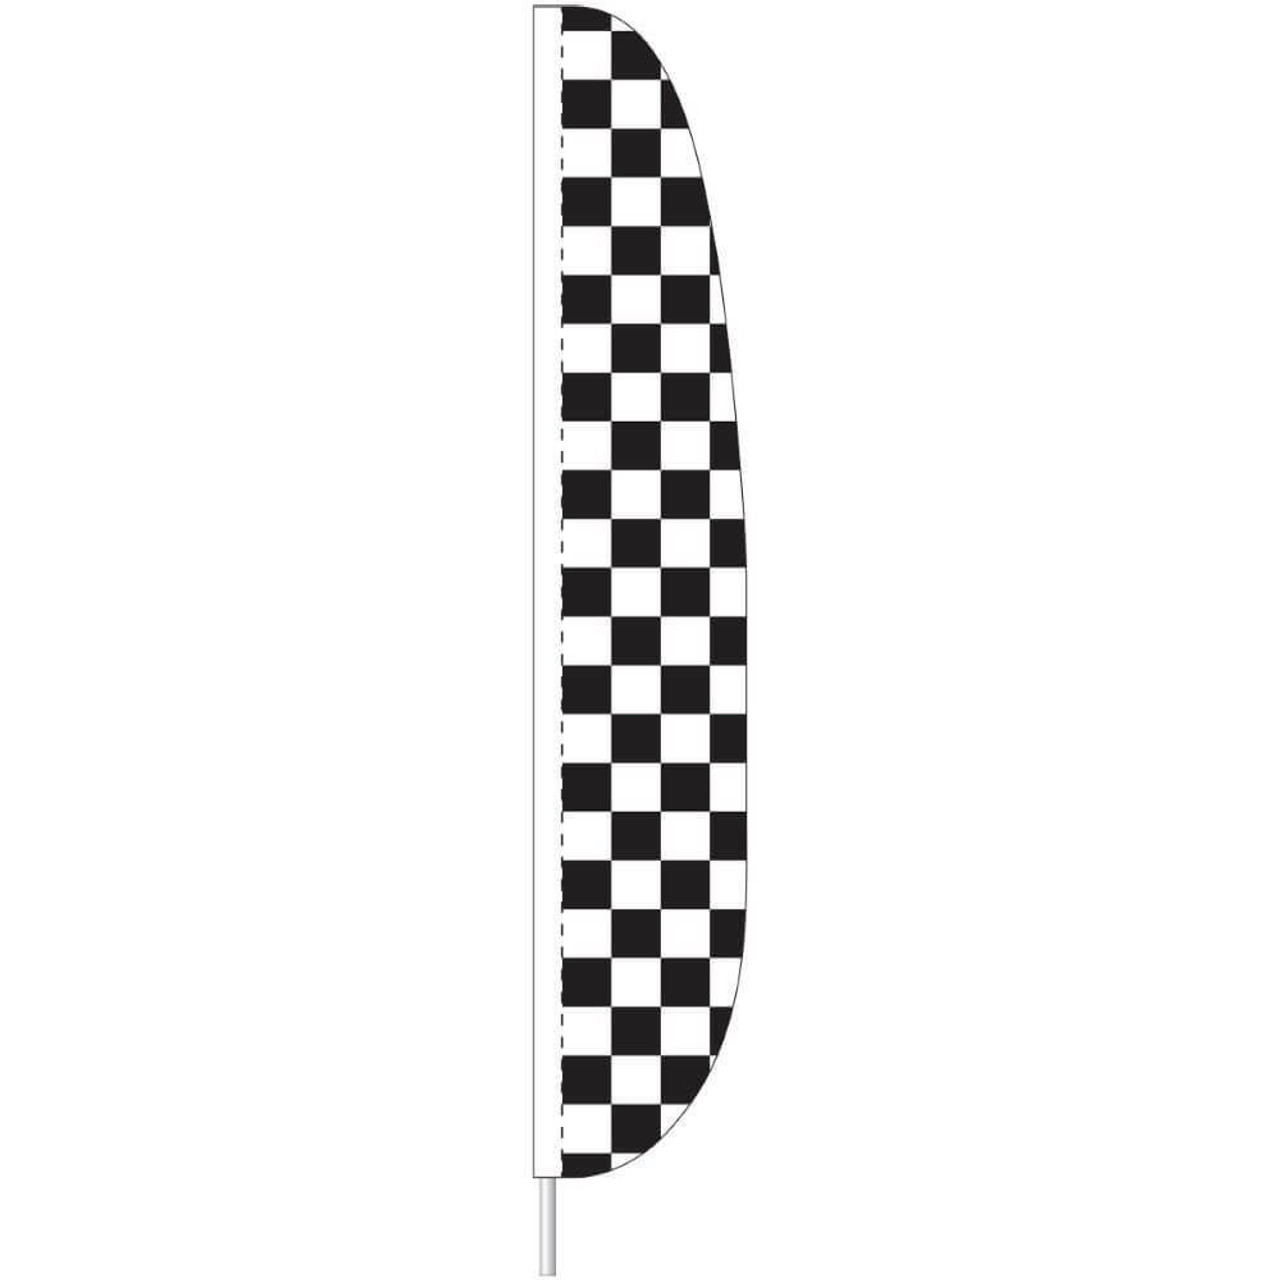 Vertical flag 26 inches wide and 12 feet tall made of nylon. The pattern is a checkerboard pattern of black and white squares. The flag can be secured to a 15 foot telescoping flagpole with a sleeve or a brass grommet that can be attached with a zip tie.